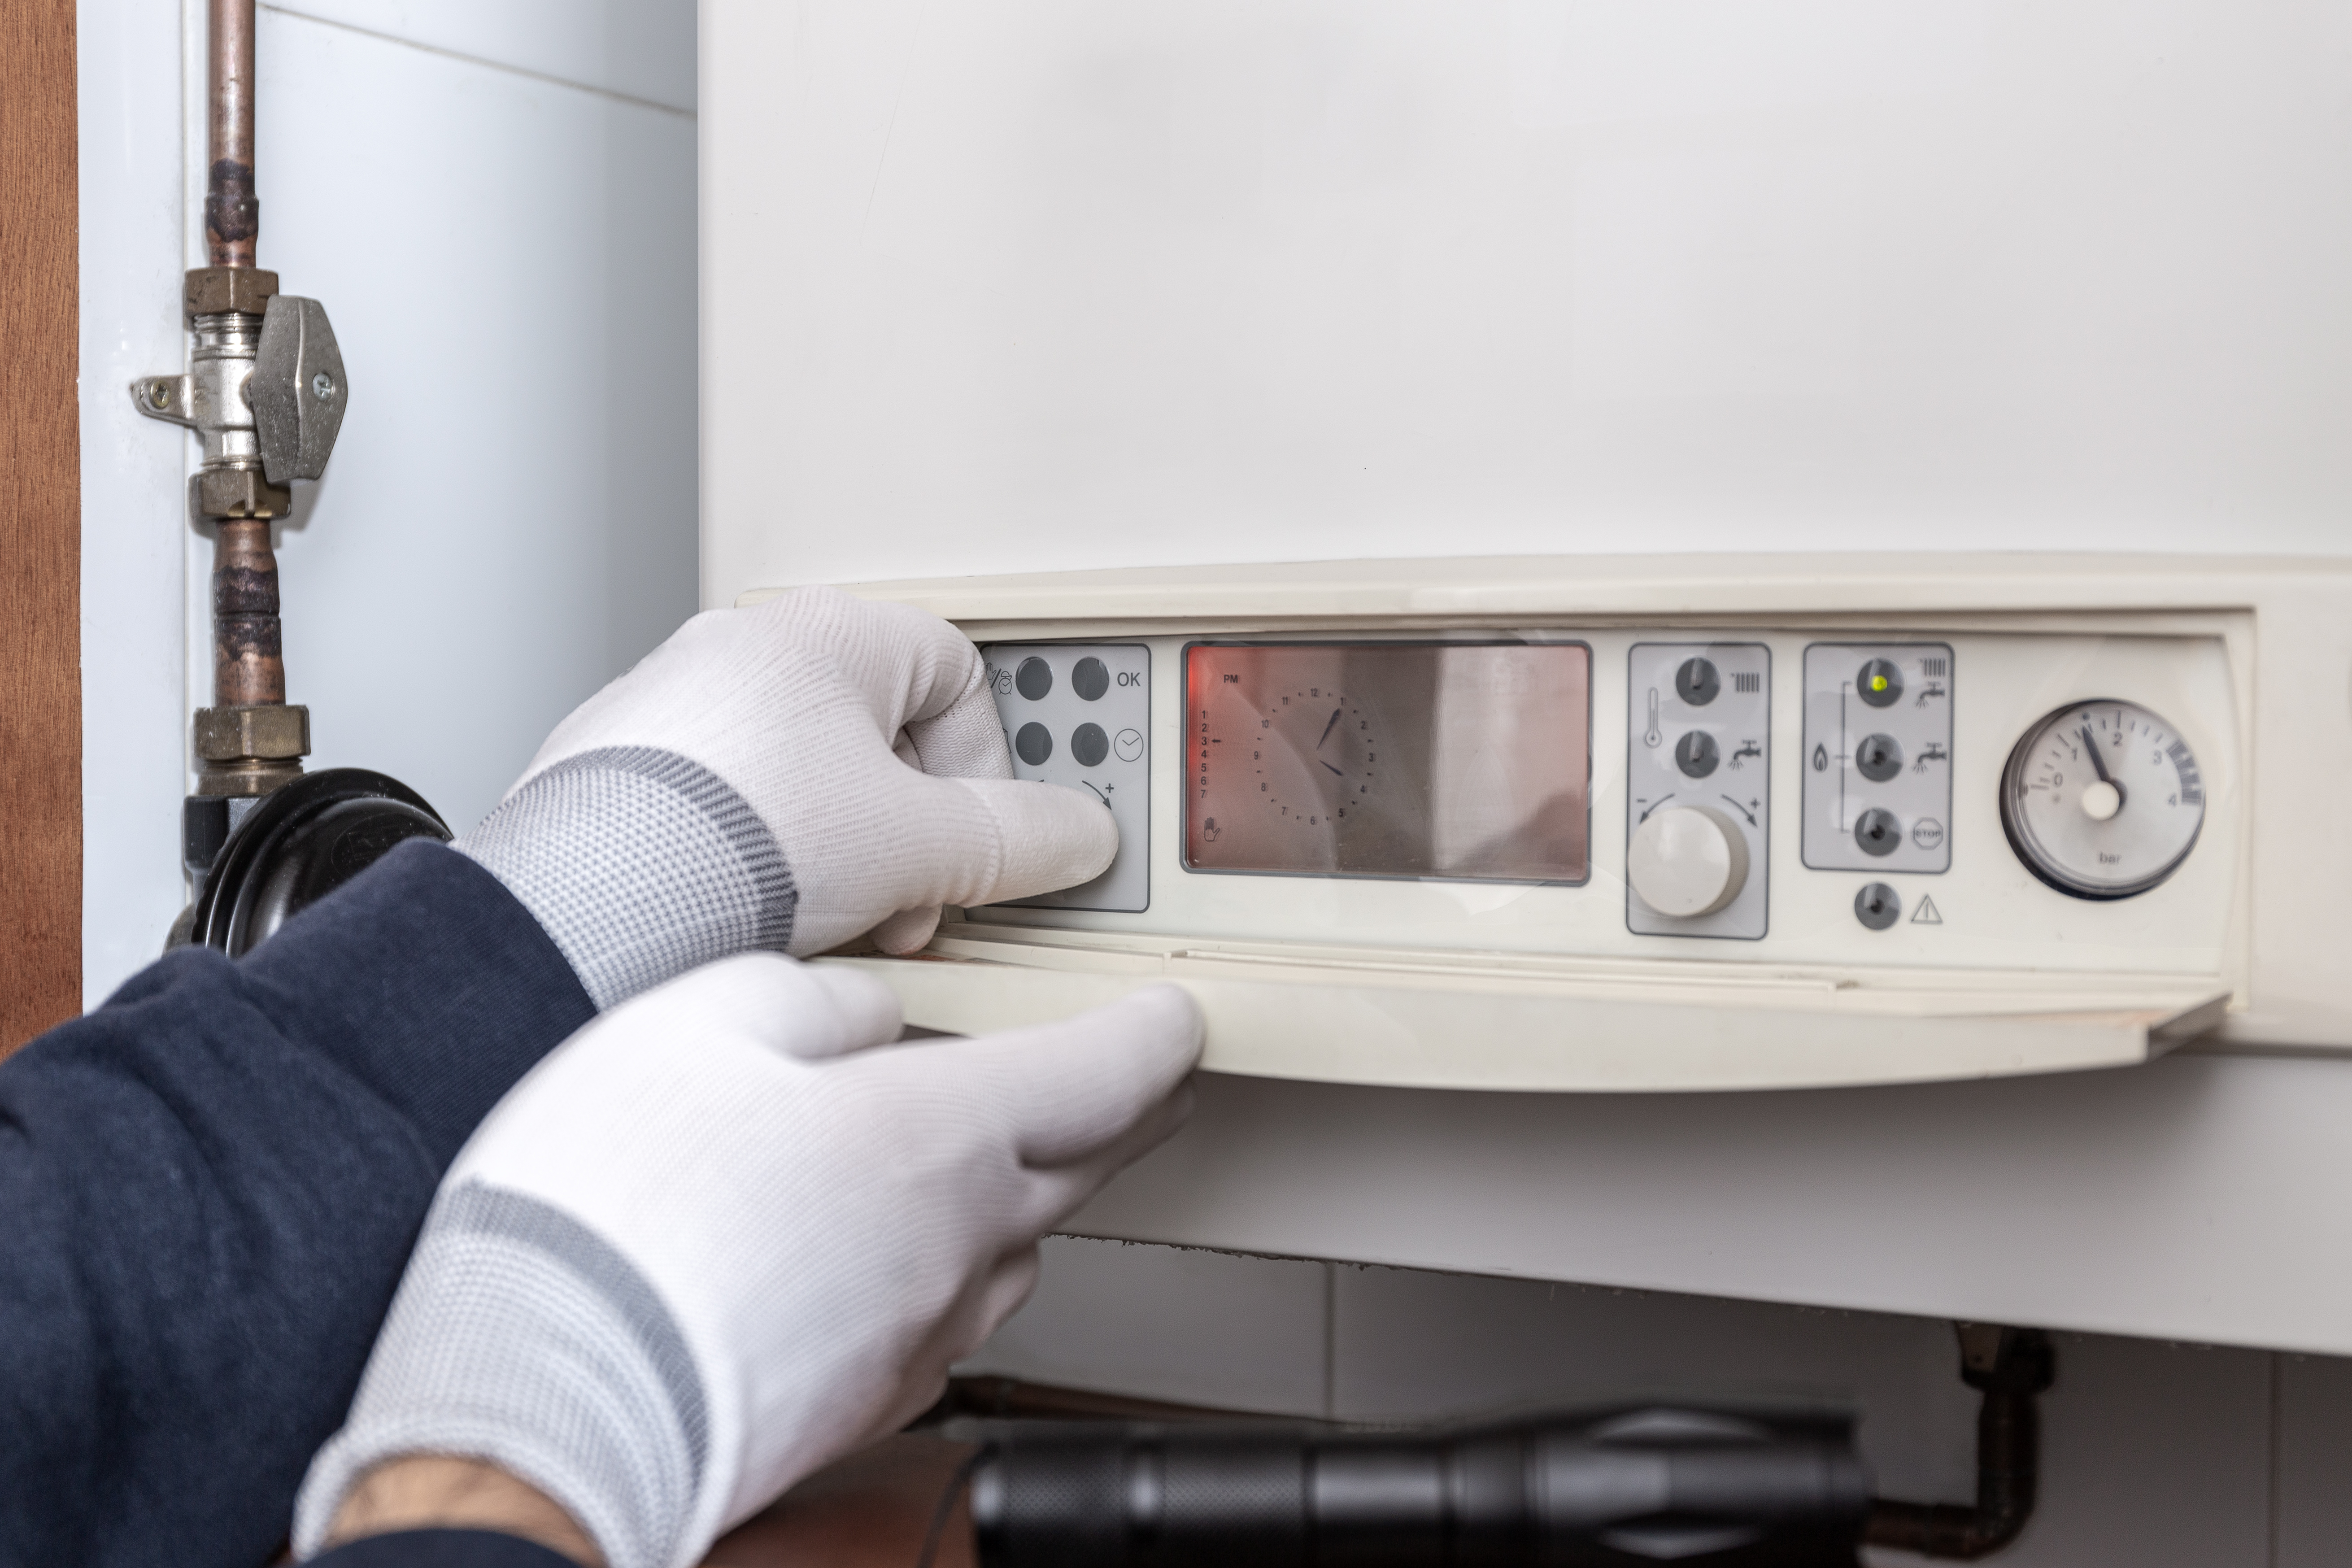 technician-servicing-heating-boiler-in-a-house-W64F4UV